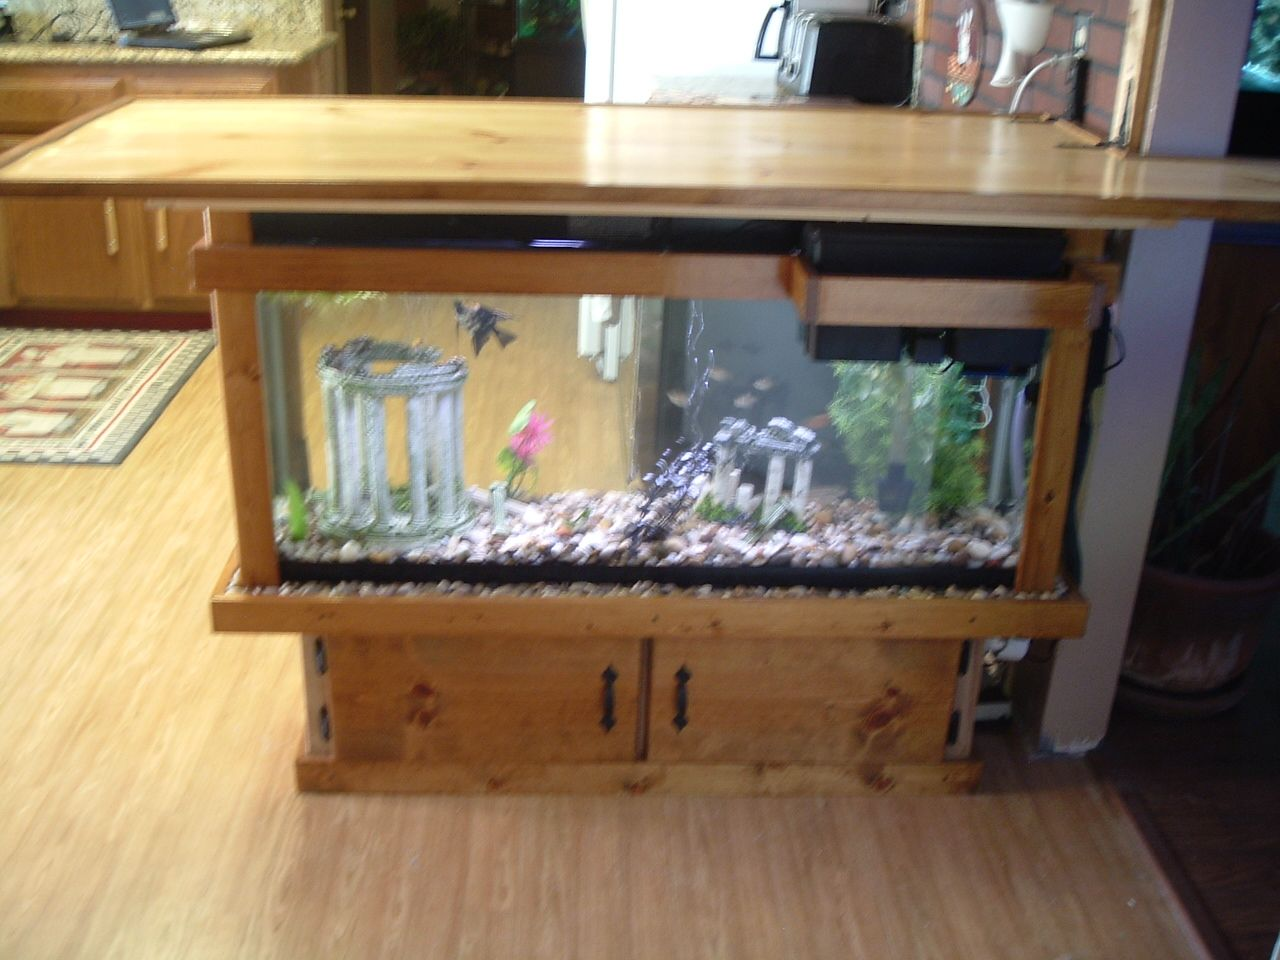 Fish tank tv stand - This Is A 55 Gallon Fish Tank Bar That Sits In Our Kitchen I